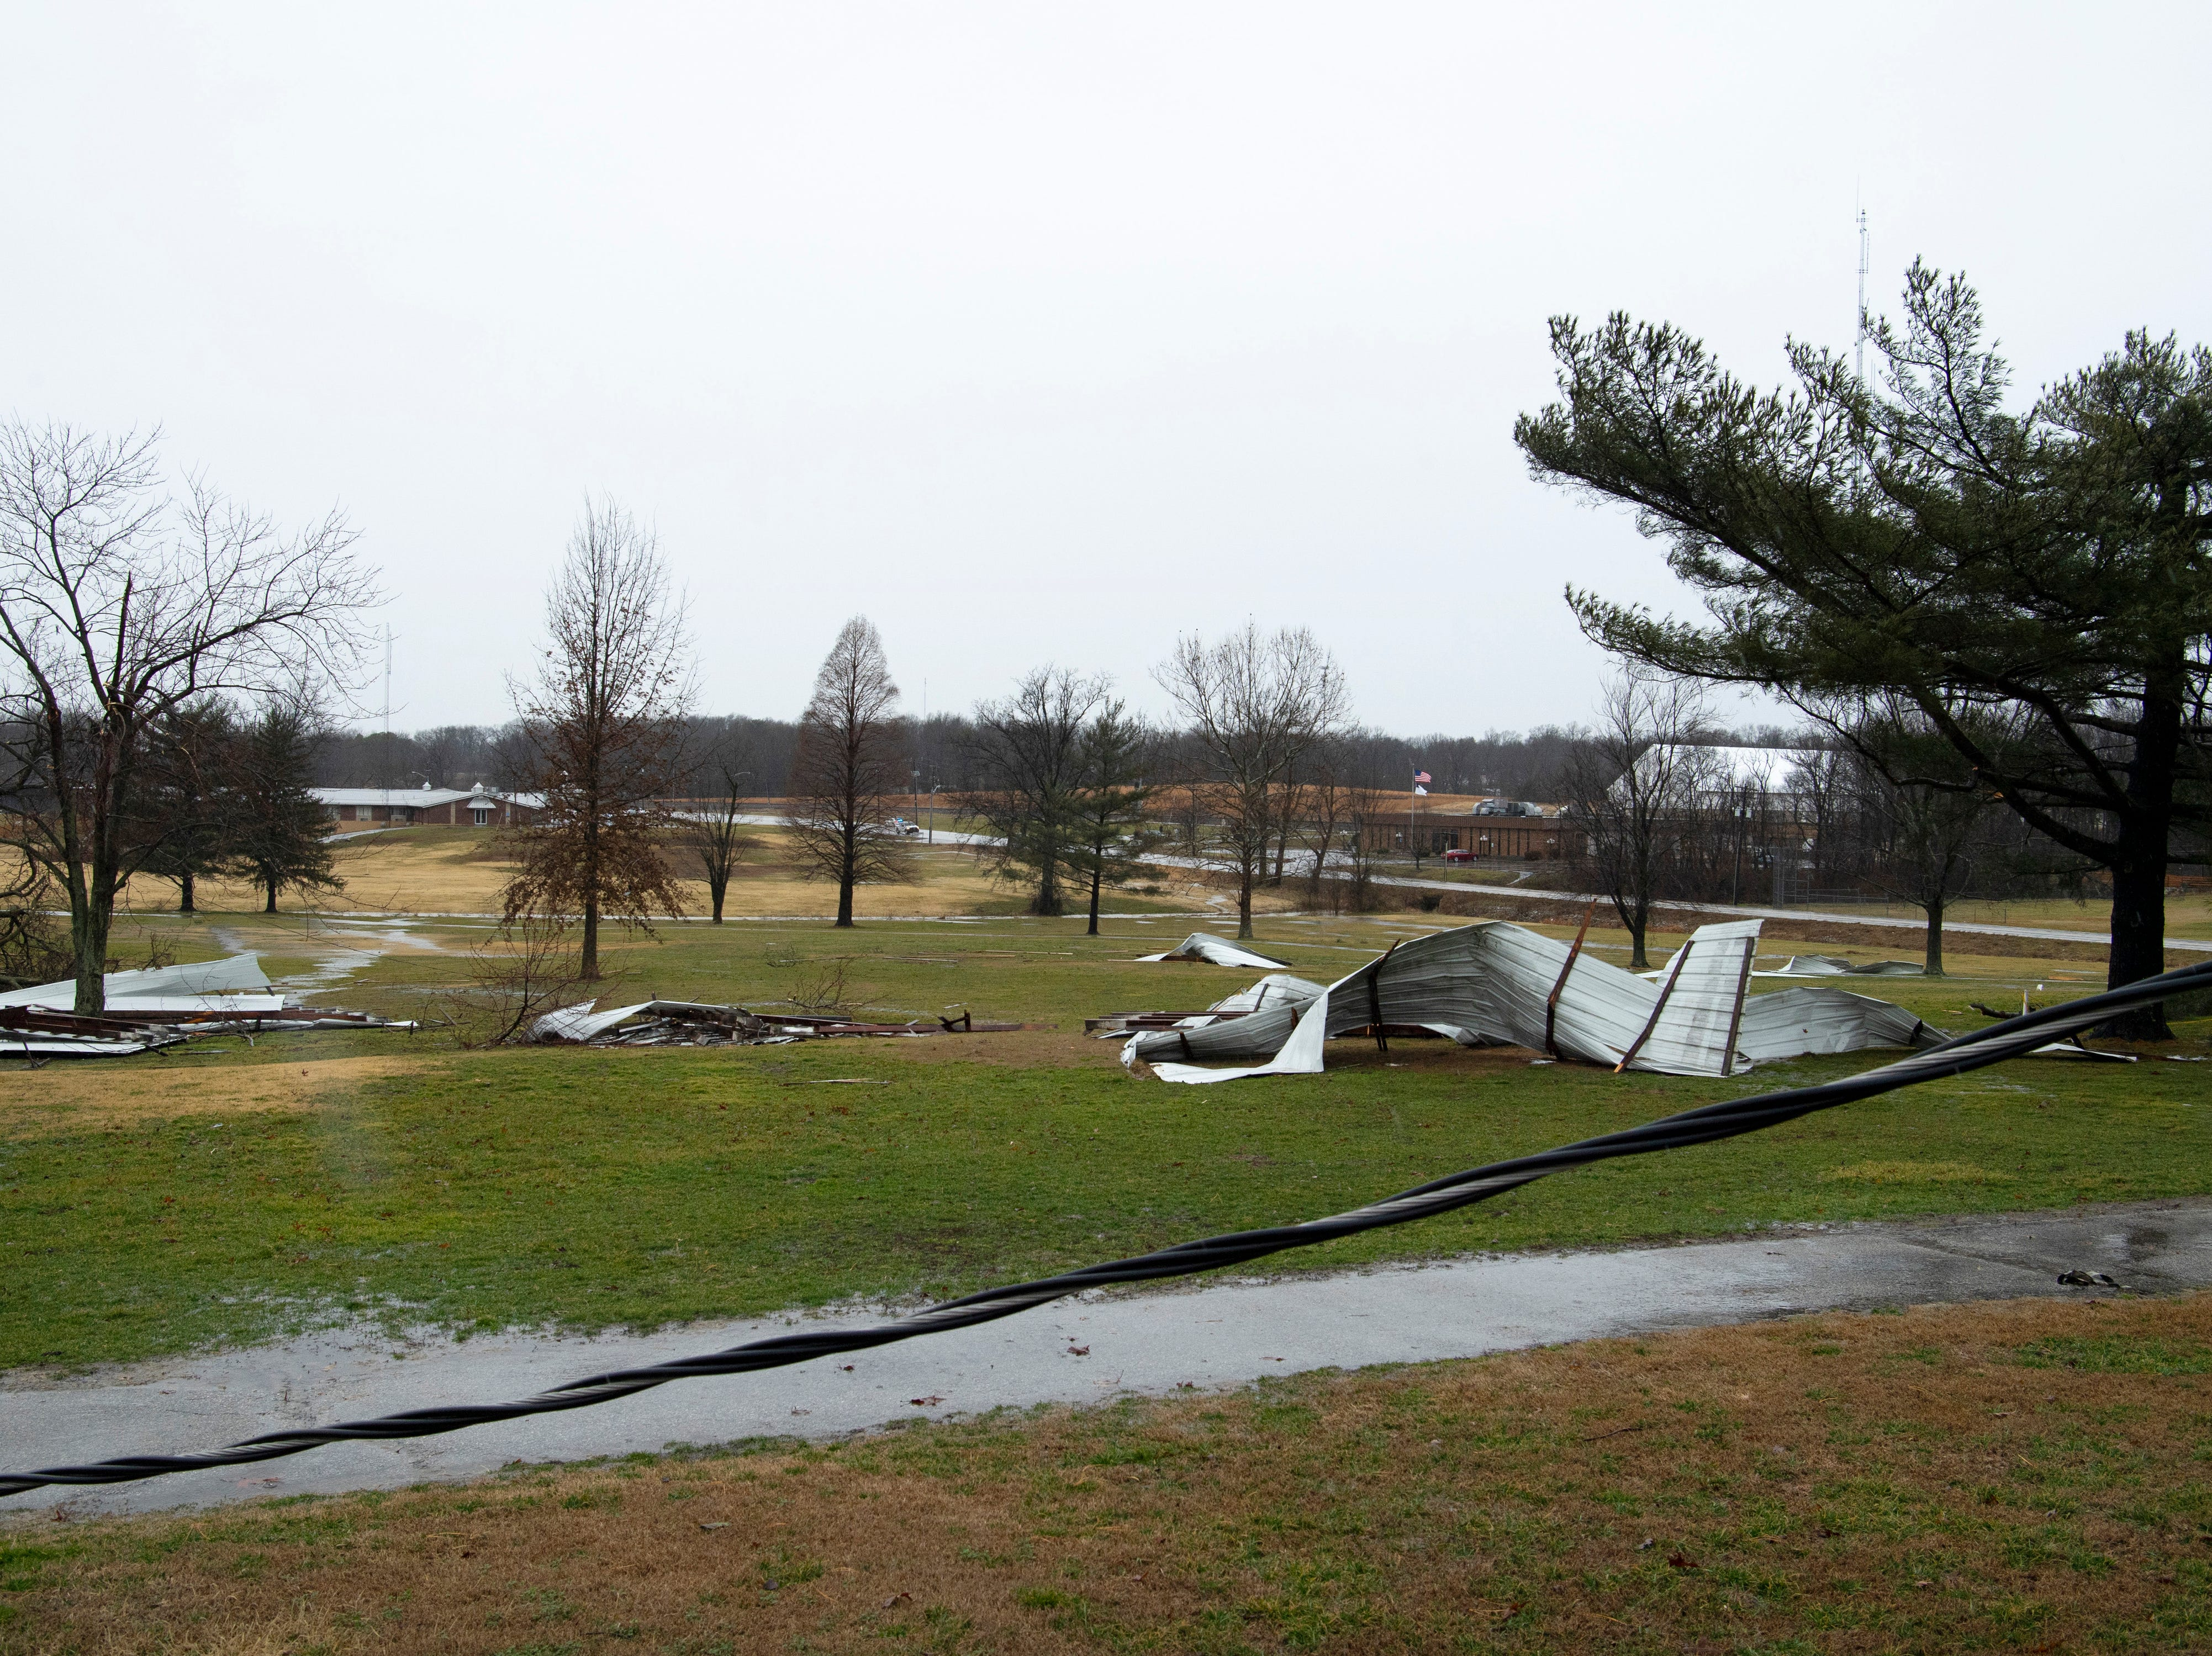 The Oakland City Golf Club is strewn with corrugated metal building panels after a storm hit the Gibson County town Thursday morning.